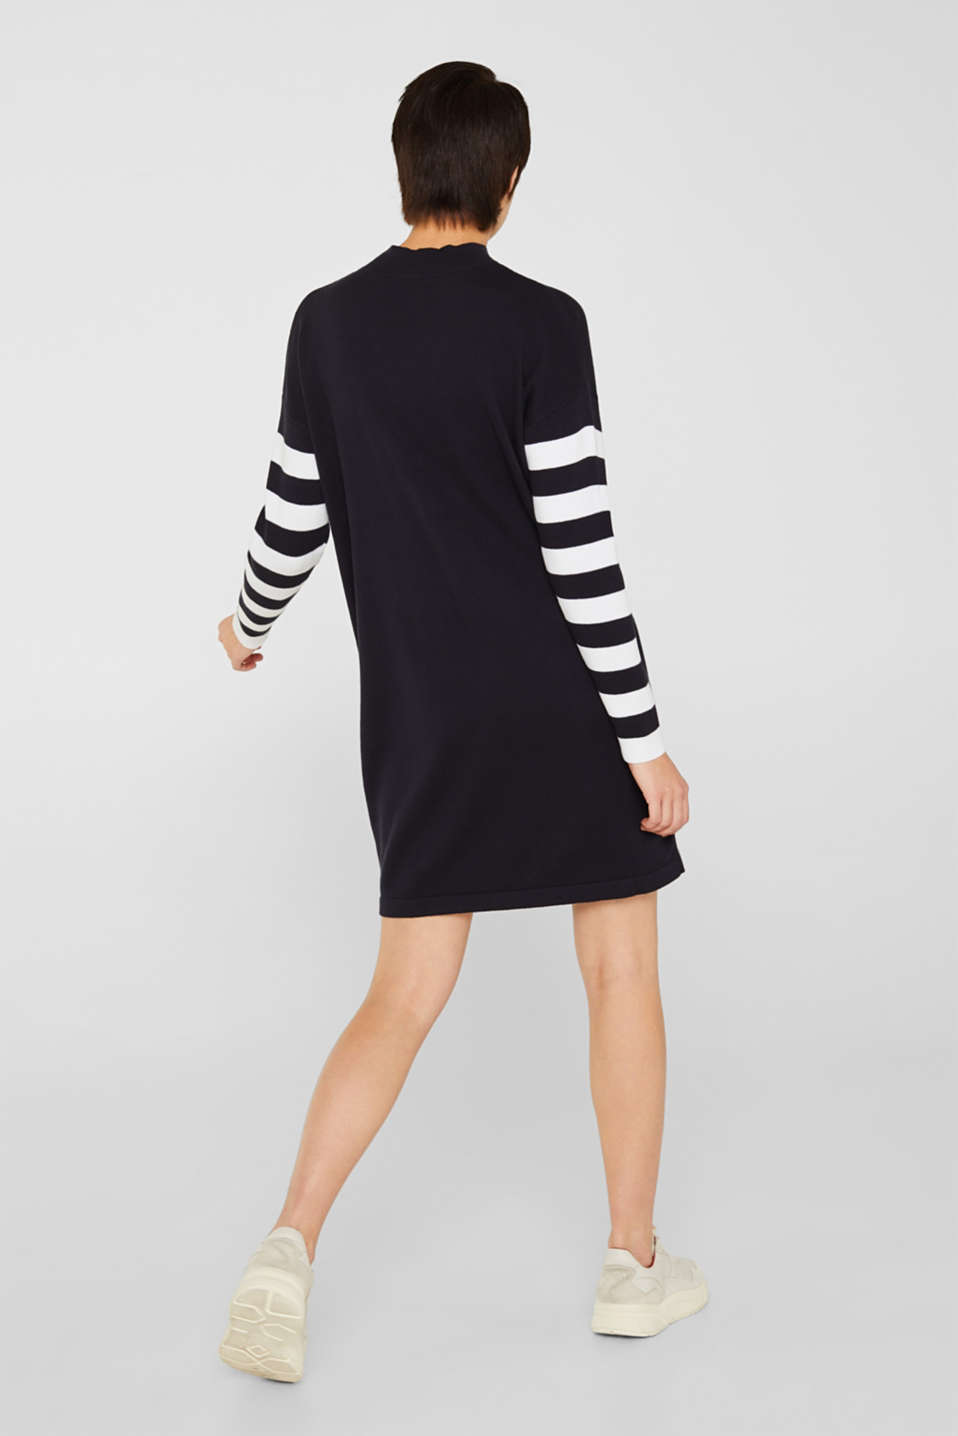 Knit dress with stripes, 100% cotton, NAVY 2, detail image number 2